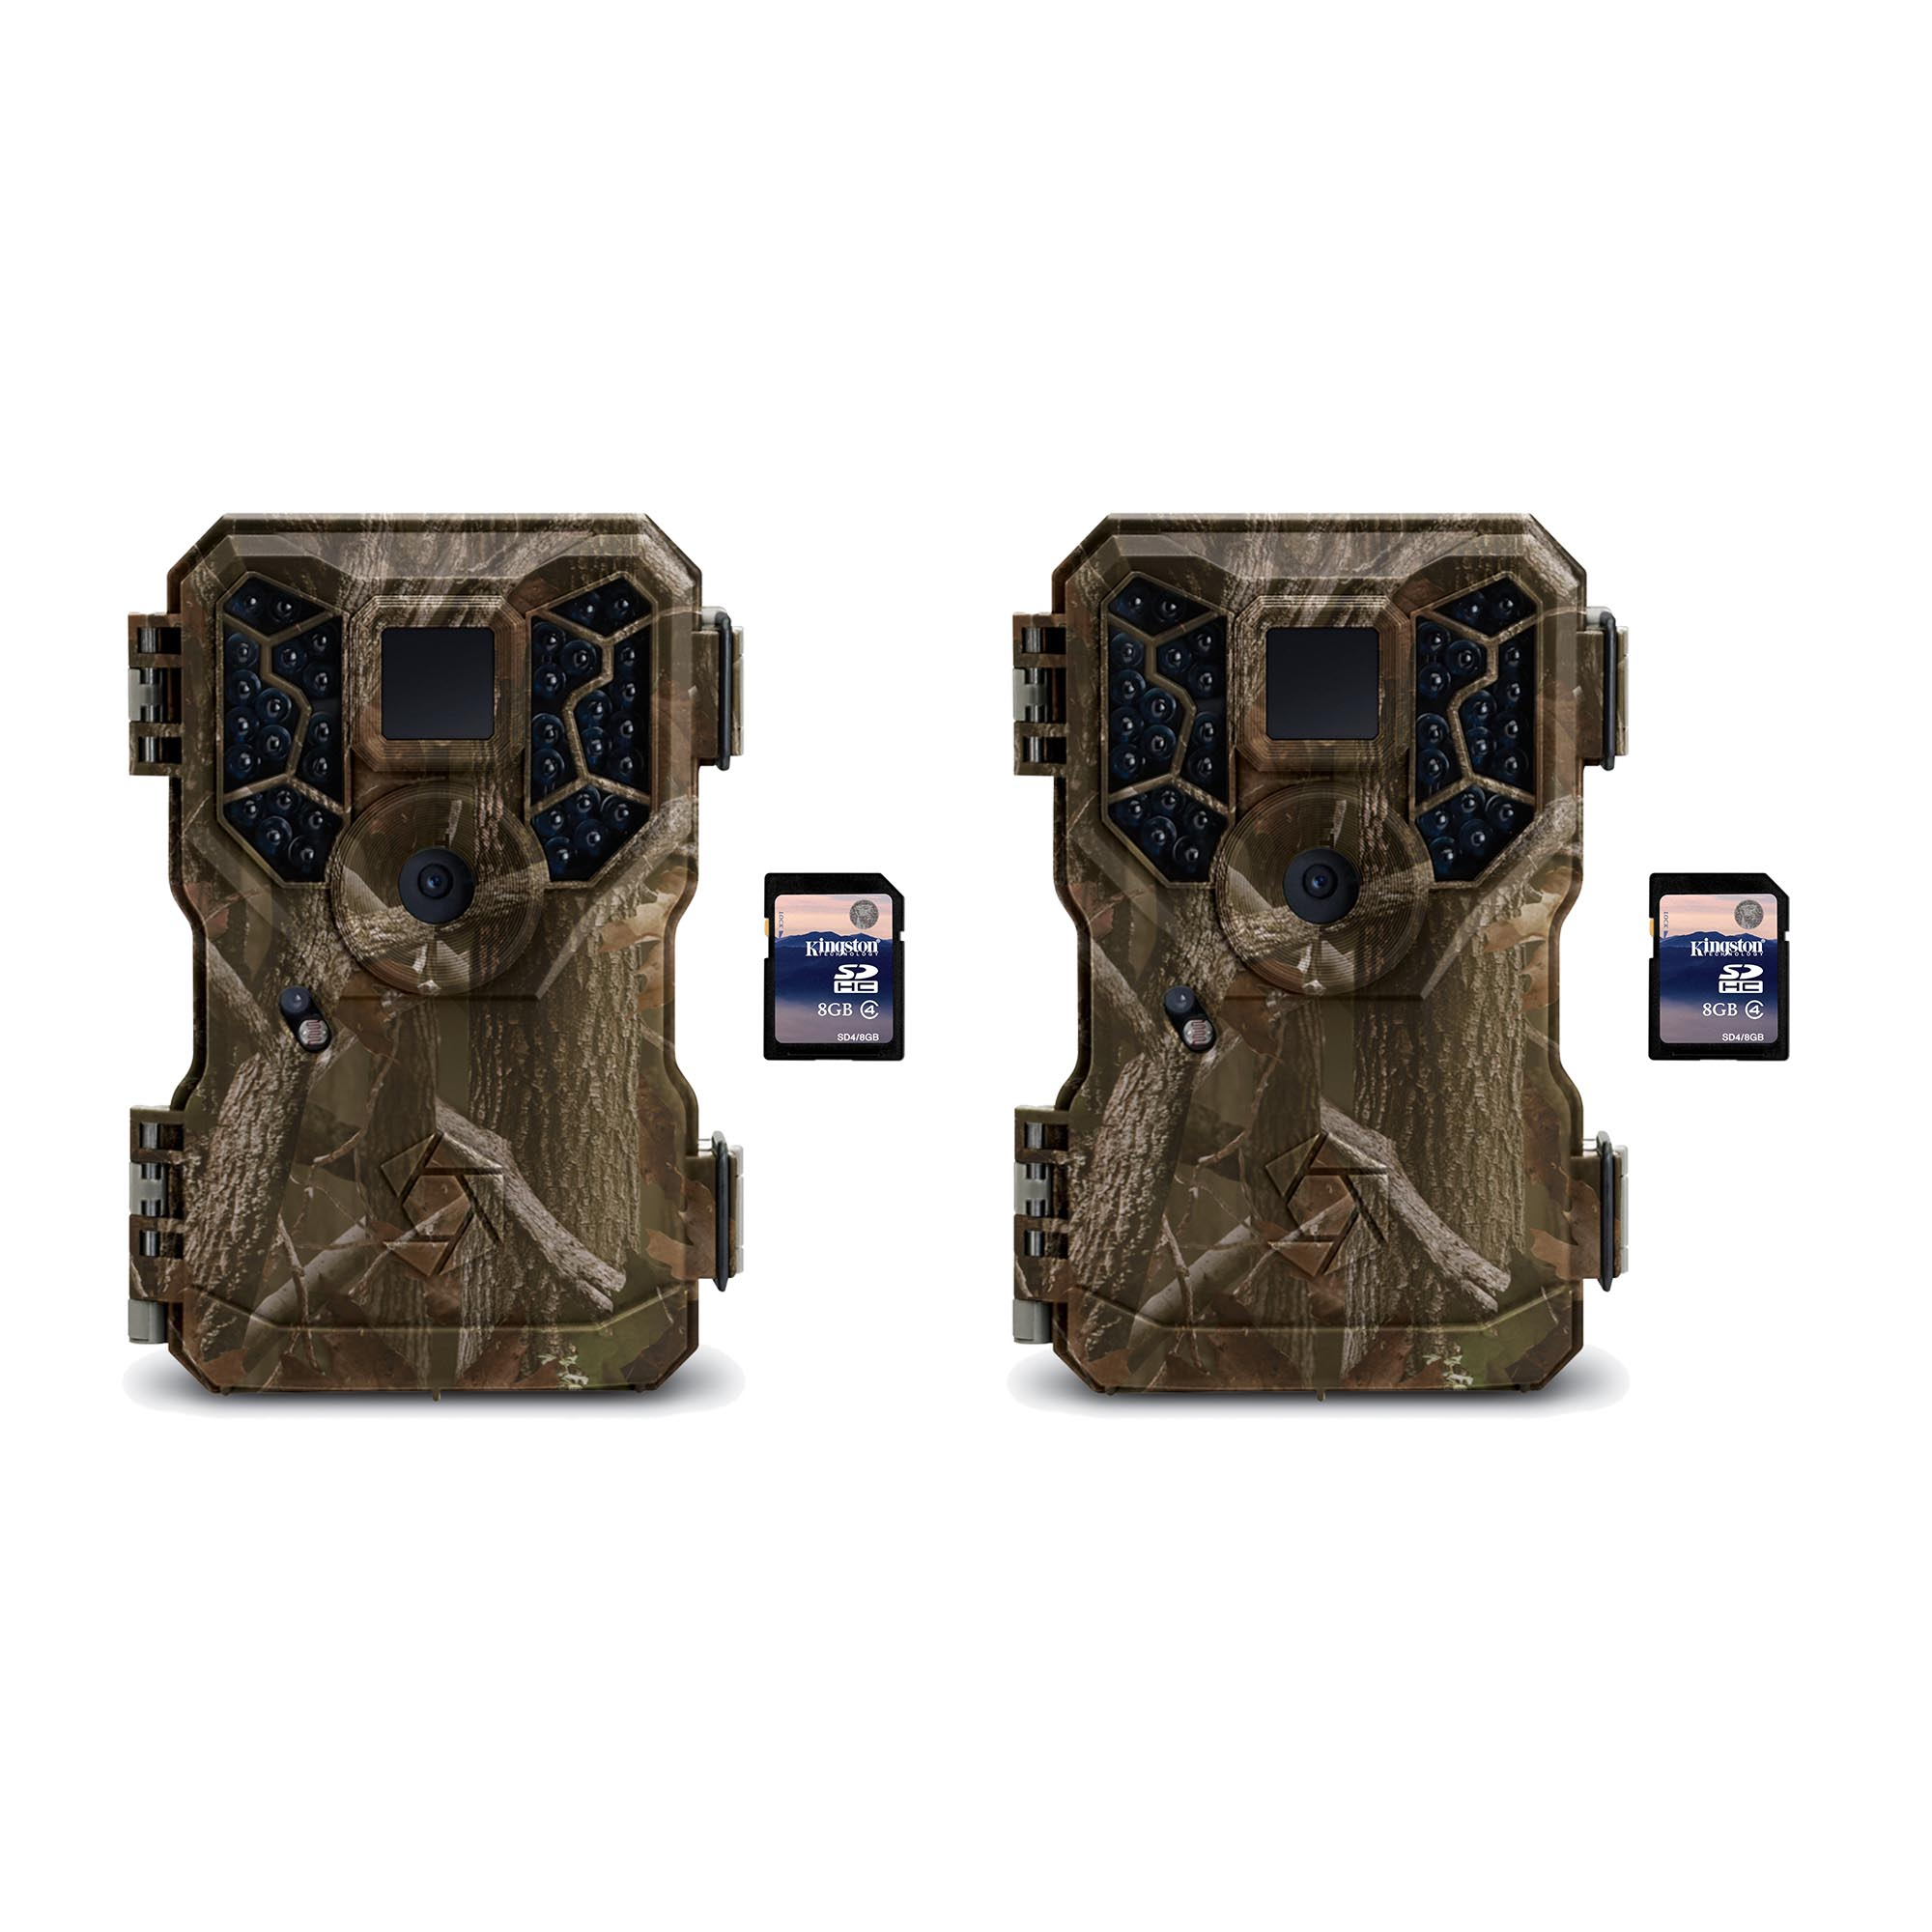 Stealth Cam PX36NG 8MP No Glo Infrared Trail Game Cameras (2 Pack) + SD Cards by Stealth Cam